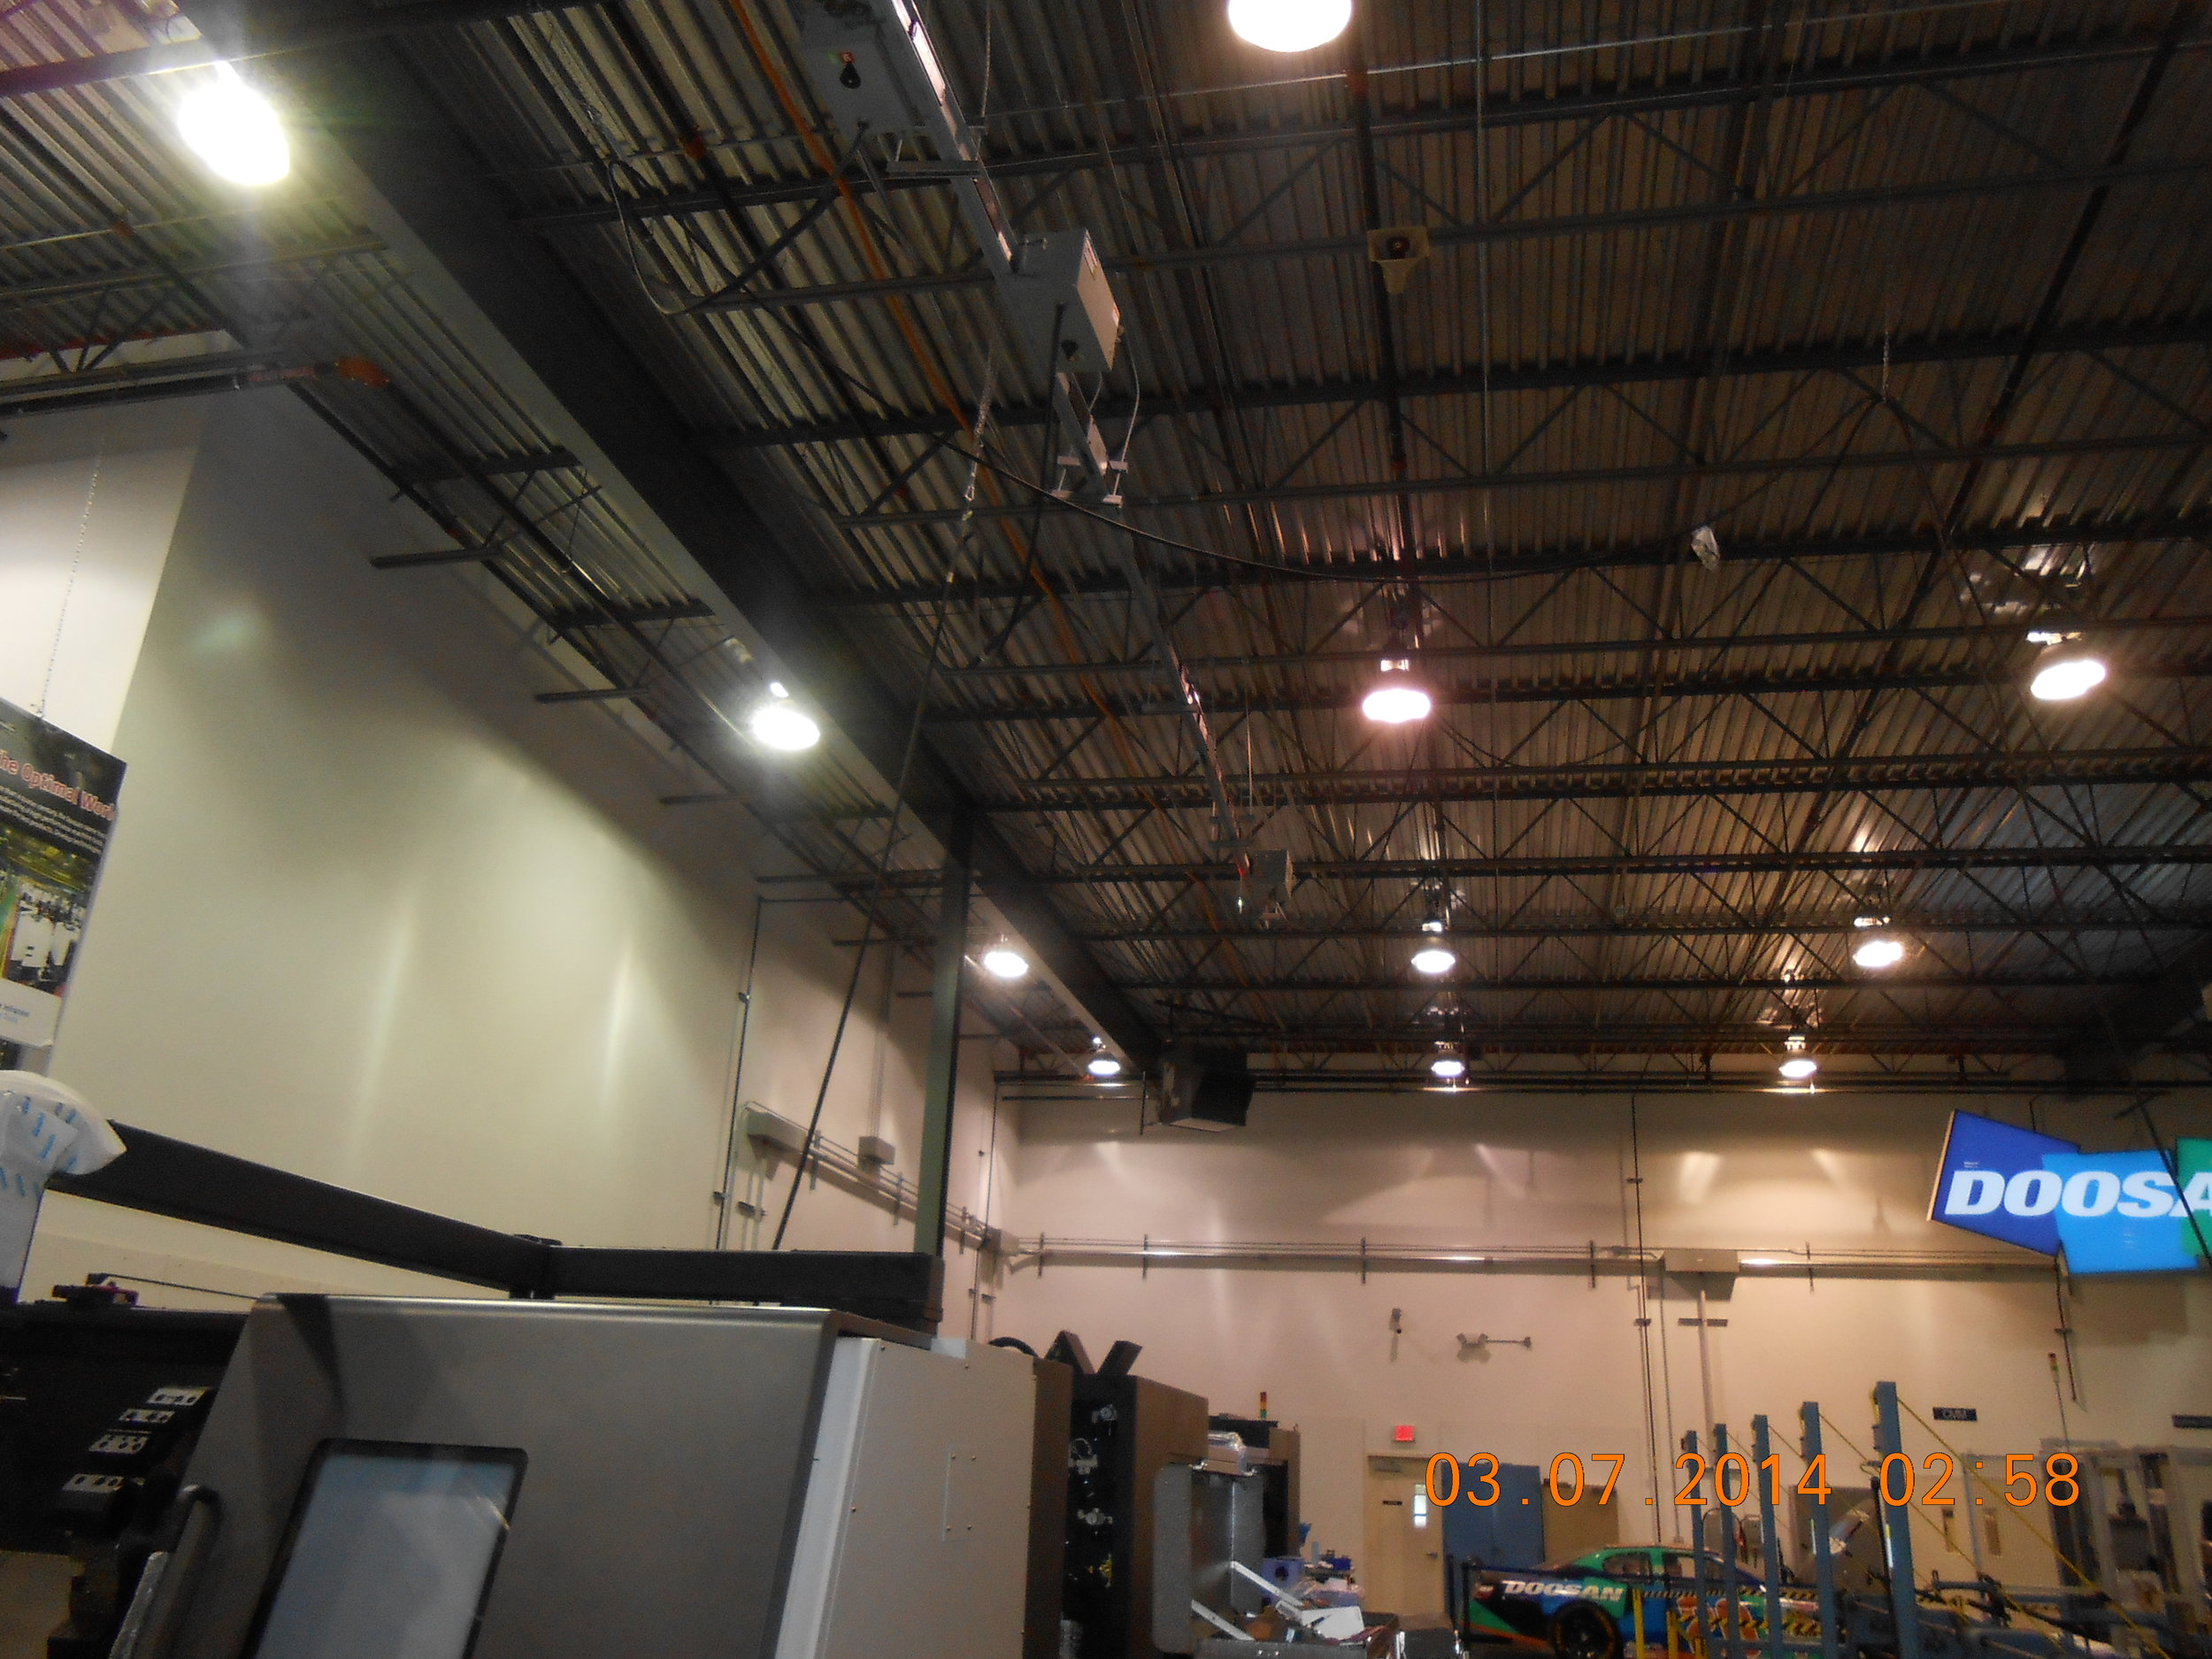 Doosan LED Lighting Retrofit - Albright Energy Solutions -Albright Electric - Mahwah NJ (3).JPG